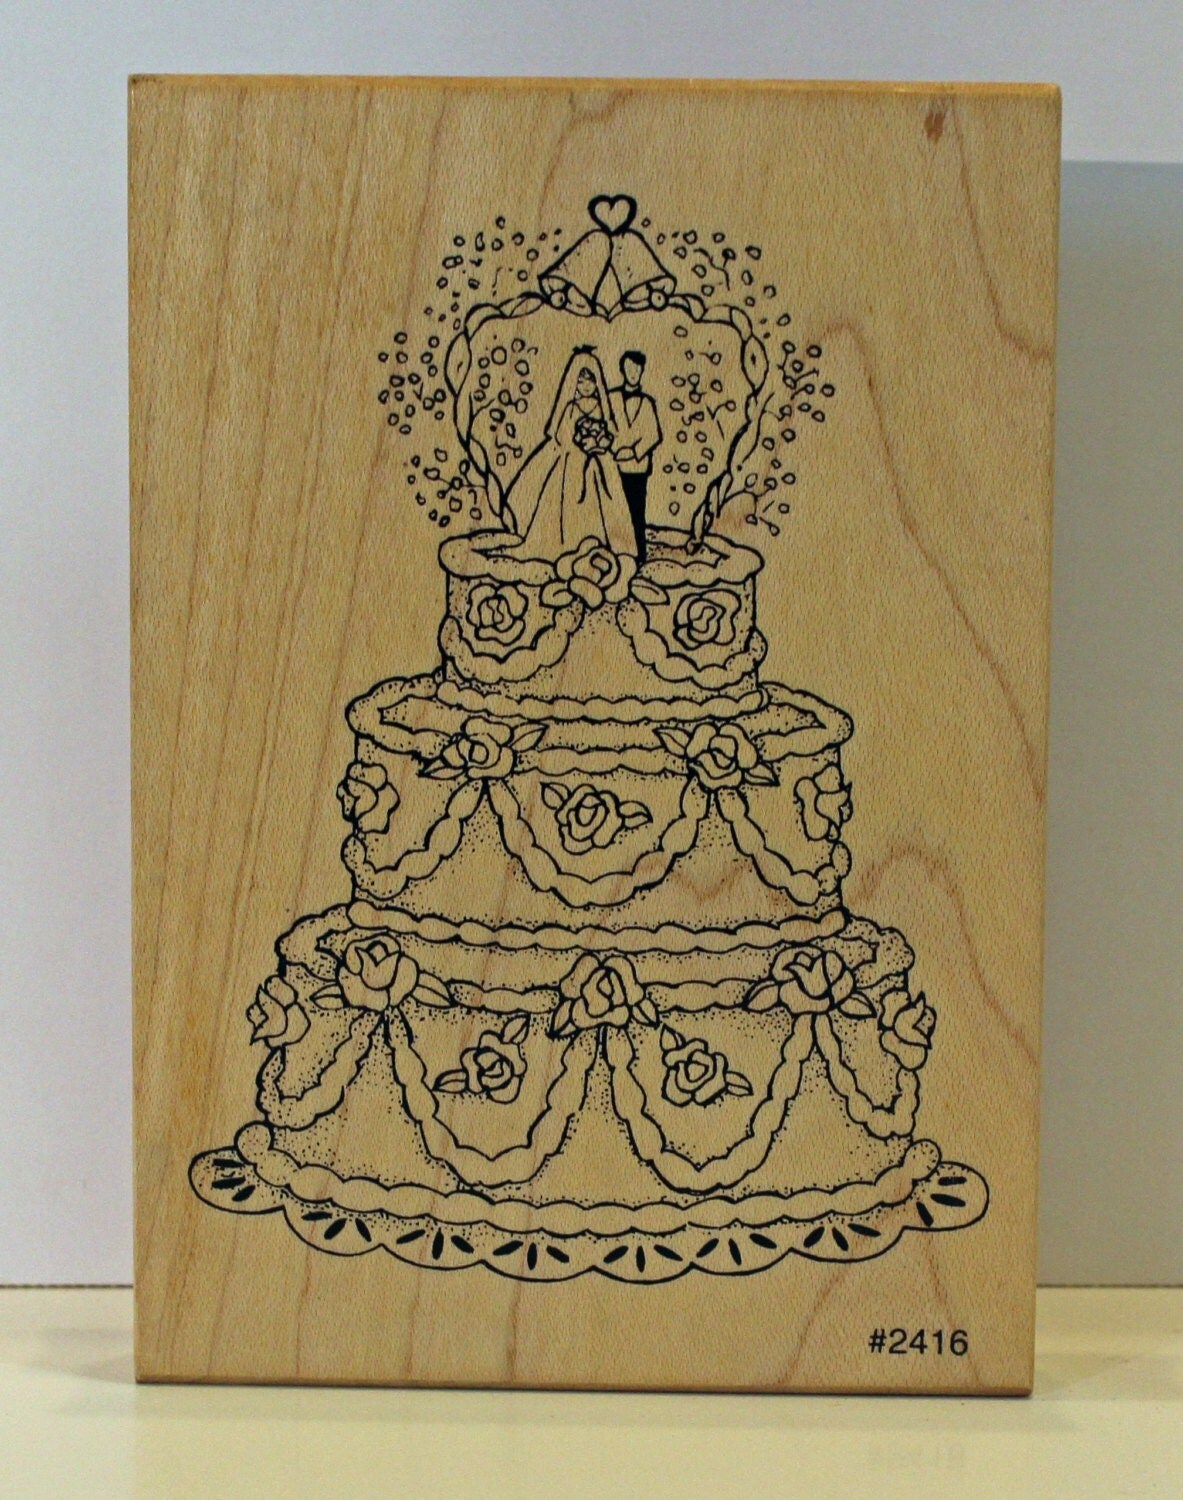 WEDDING CAKE Huge Rubber Stamp By PollysPlace On Etsy